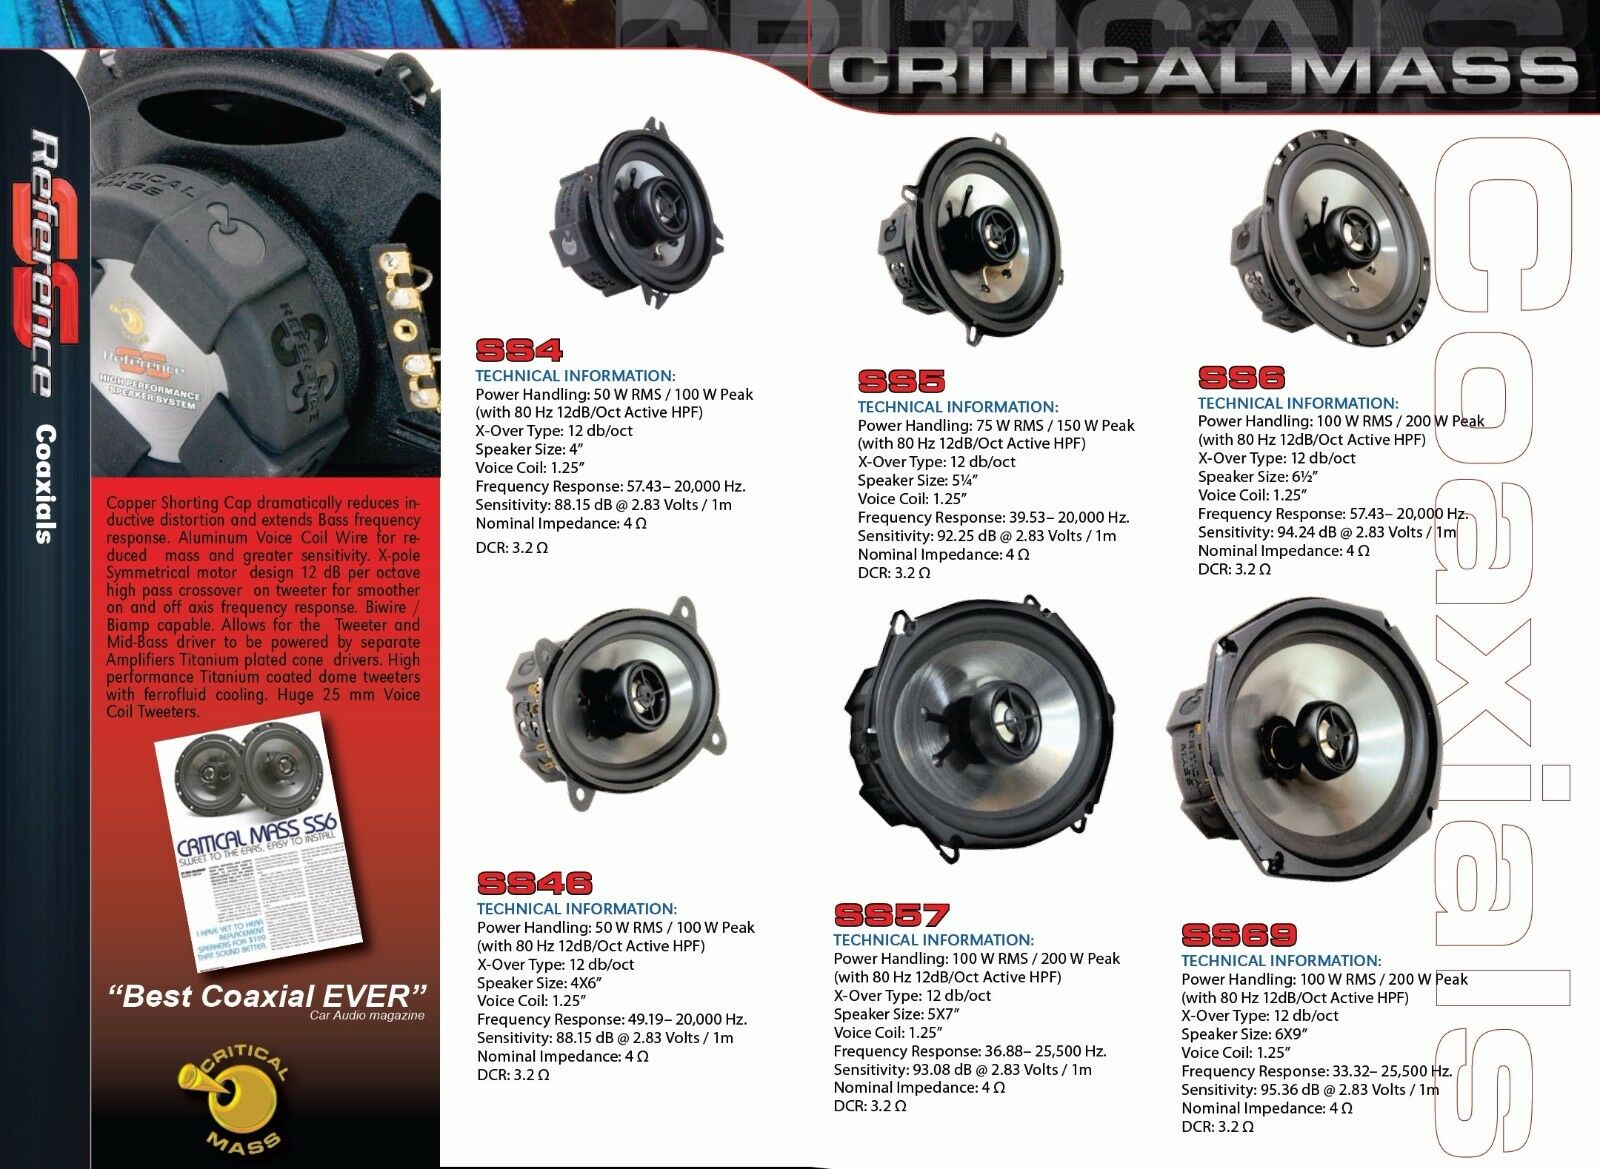 CRITICAL MASS AUDIO SS57 SPEAKERS 6x8 UL12 BEST MADE IN THE USA BEST 2 WAY SOUND